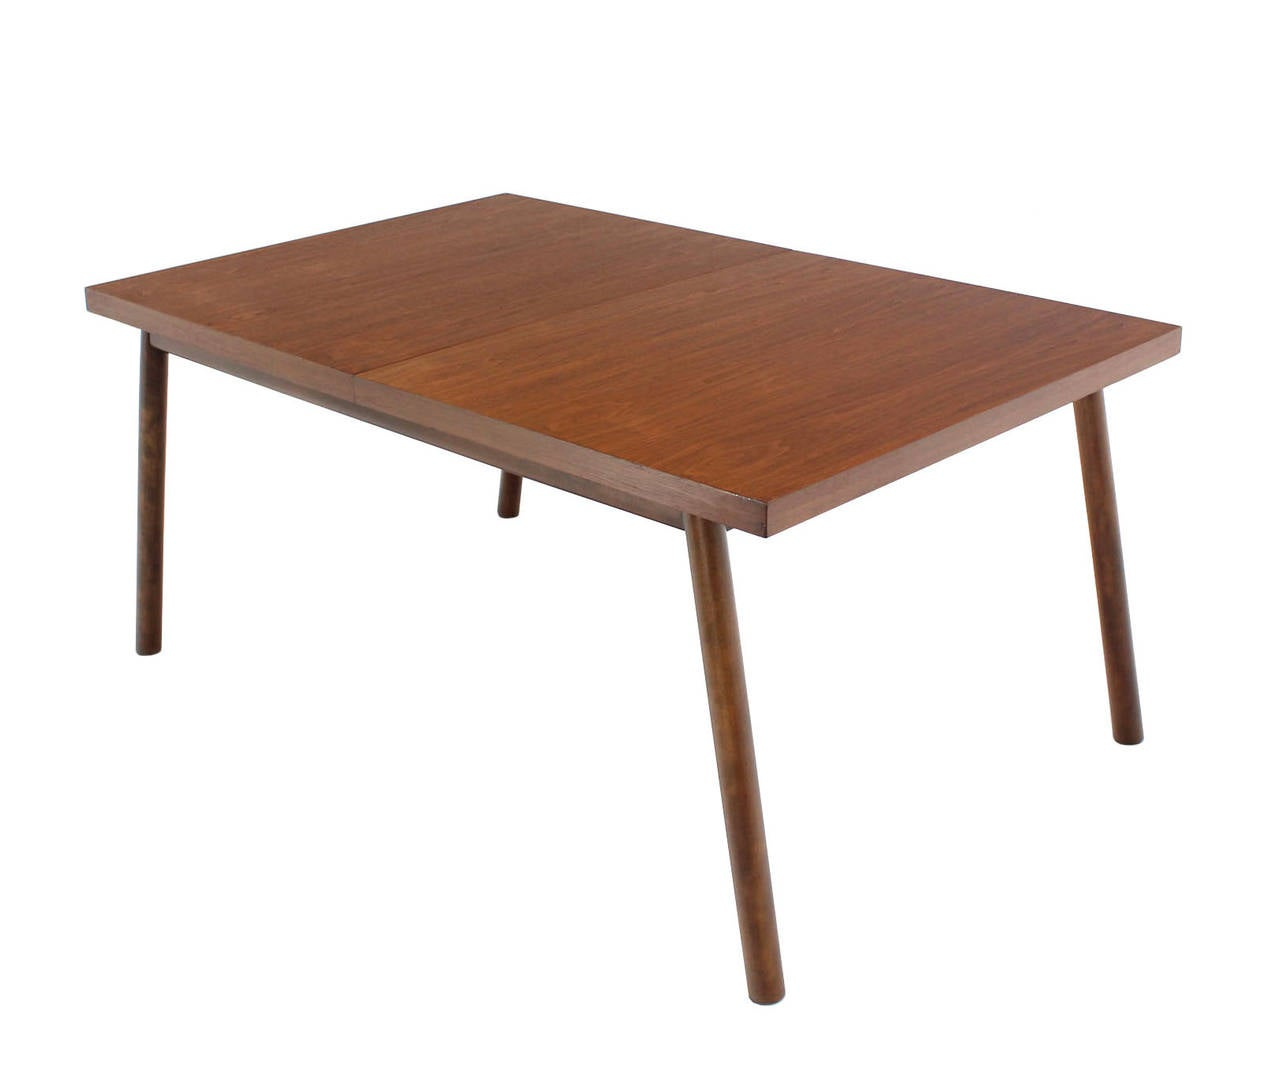 Robsjohn Gibbings Walnut Extention Dining Table With Two